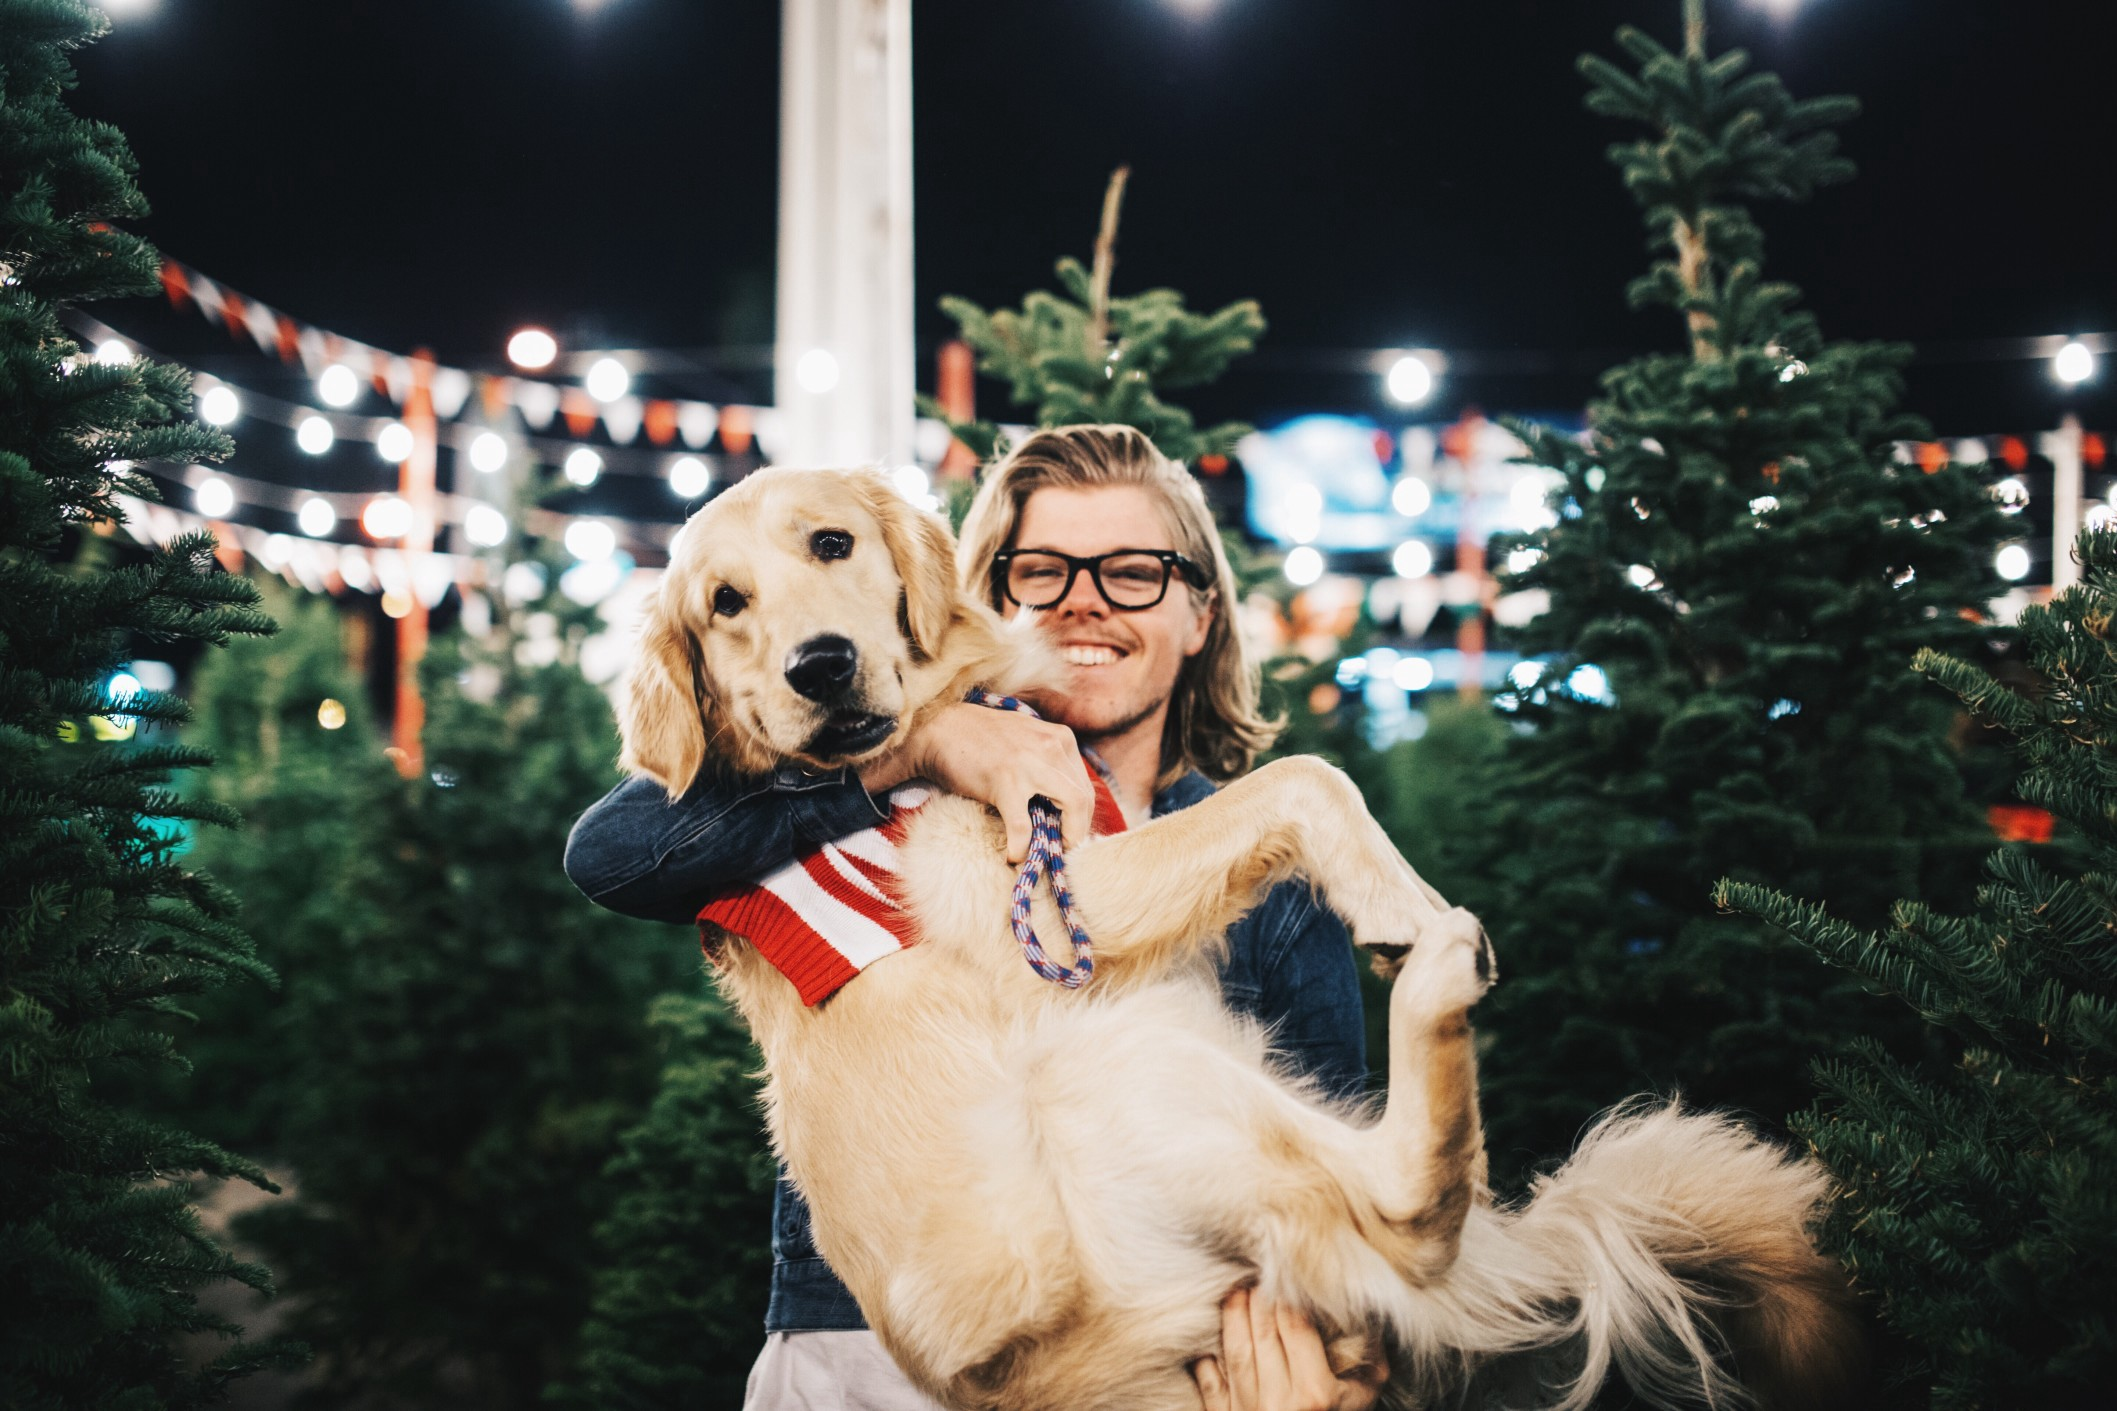 A man holds a golden retriever and smiles in a Christmas tree-filled lot.